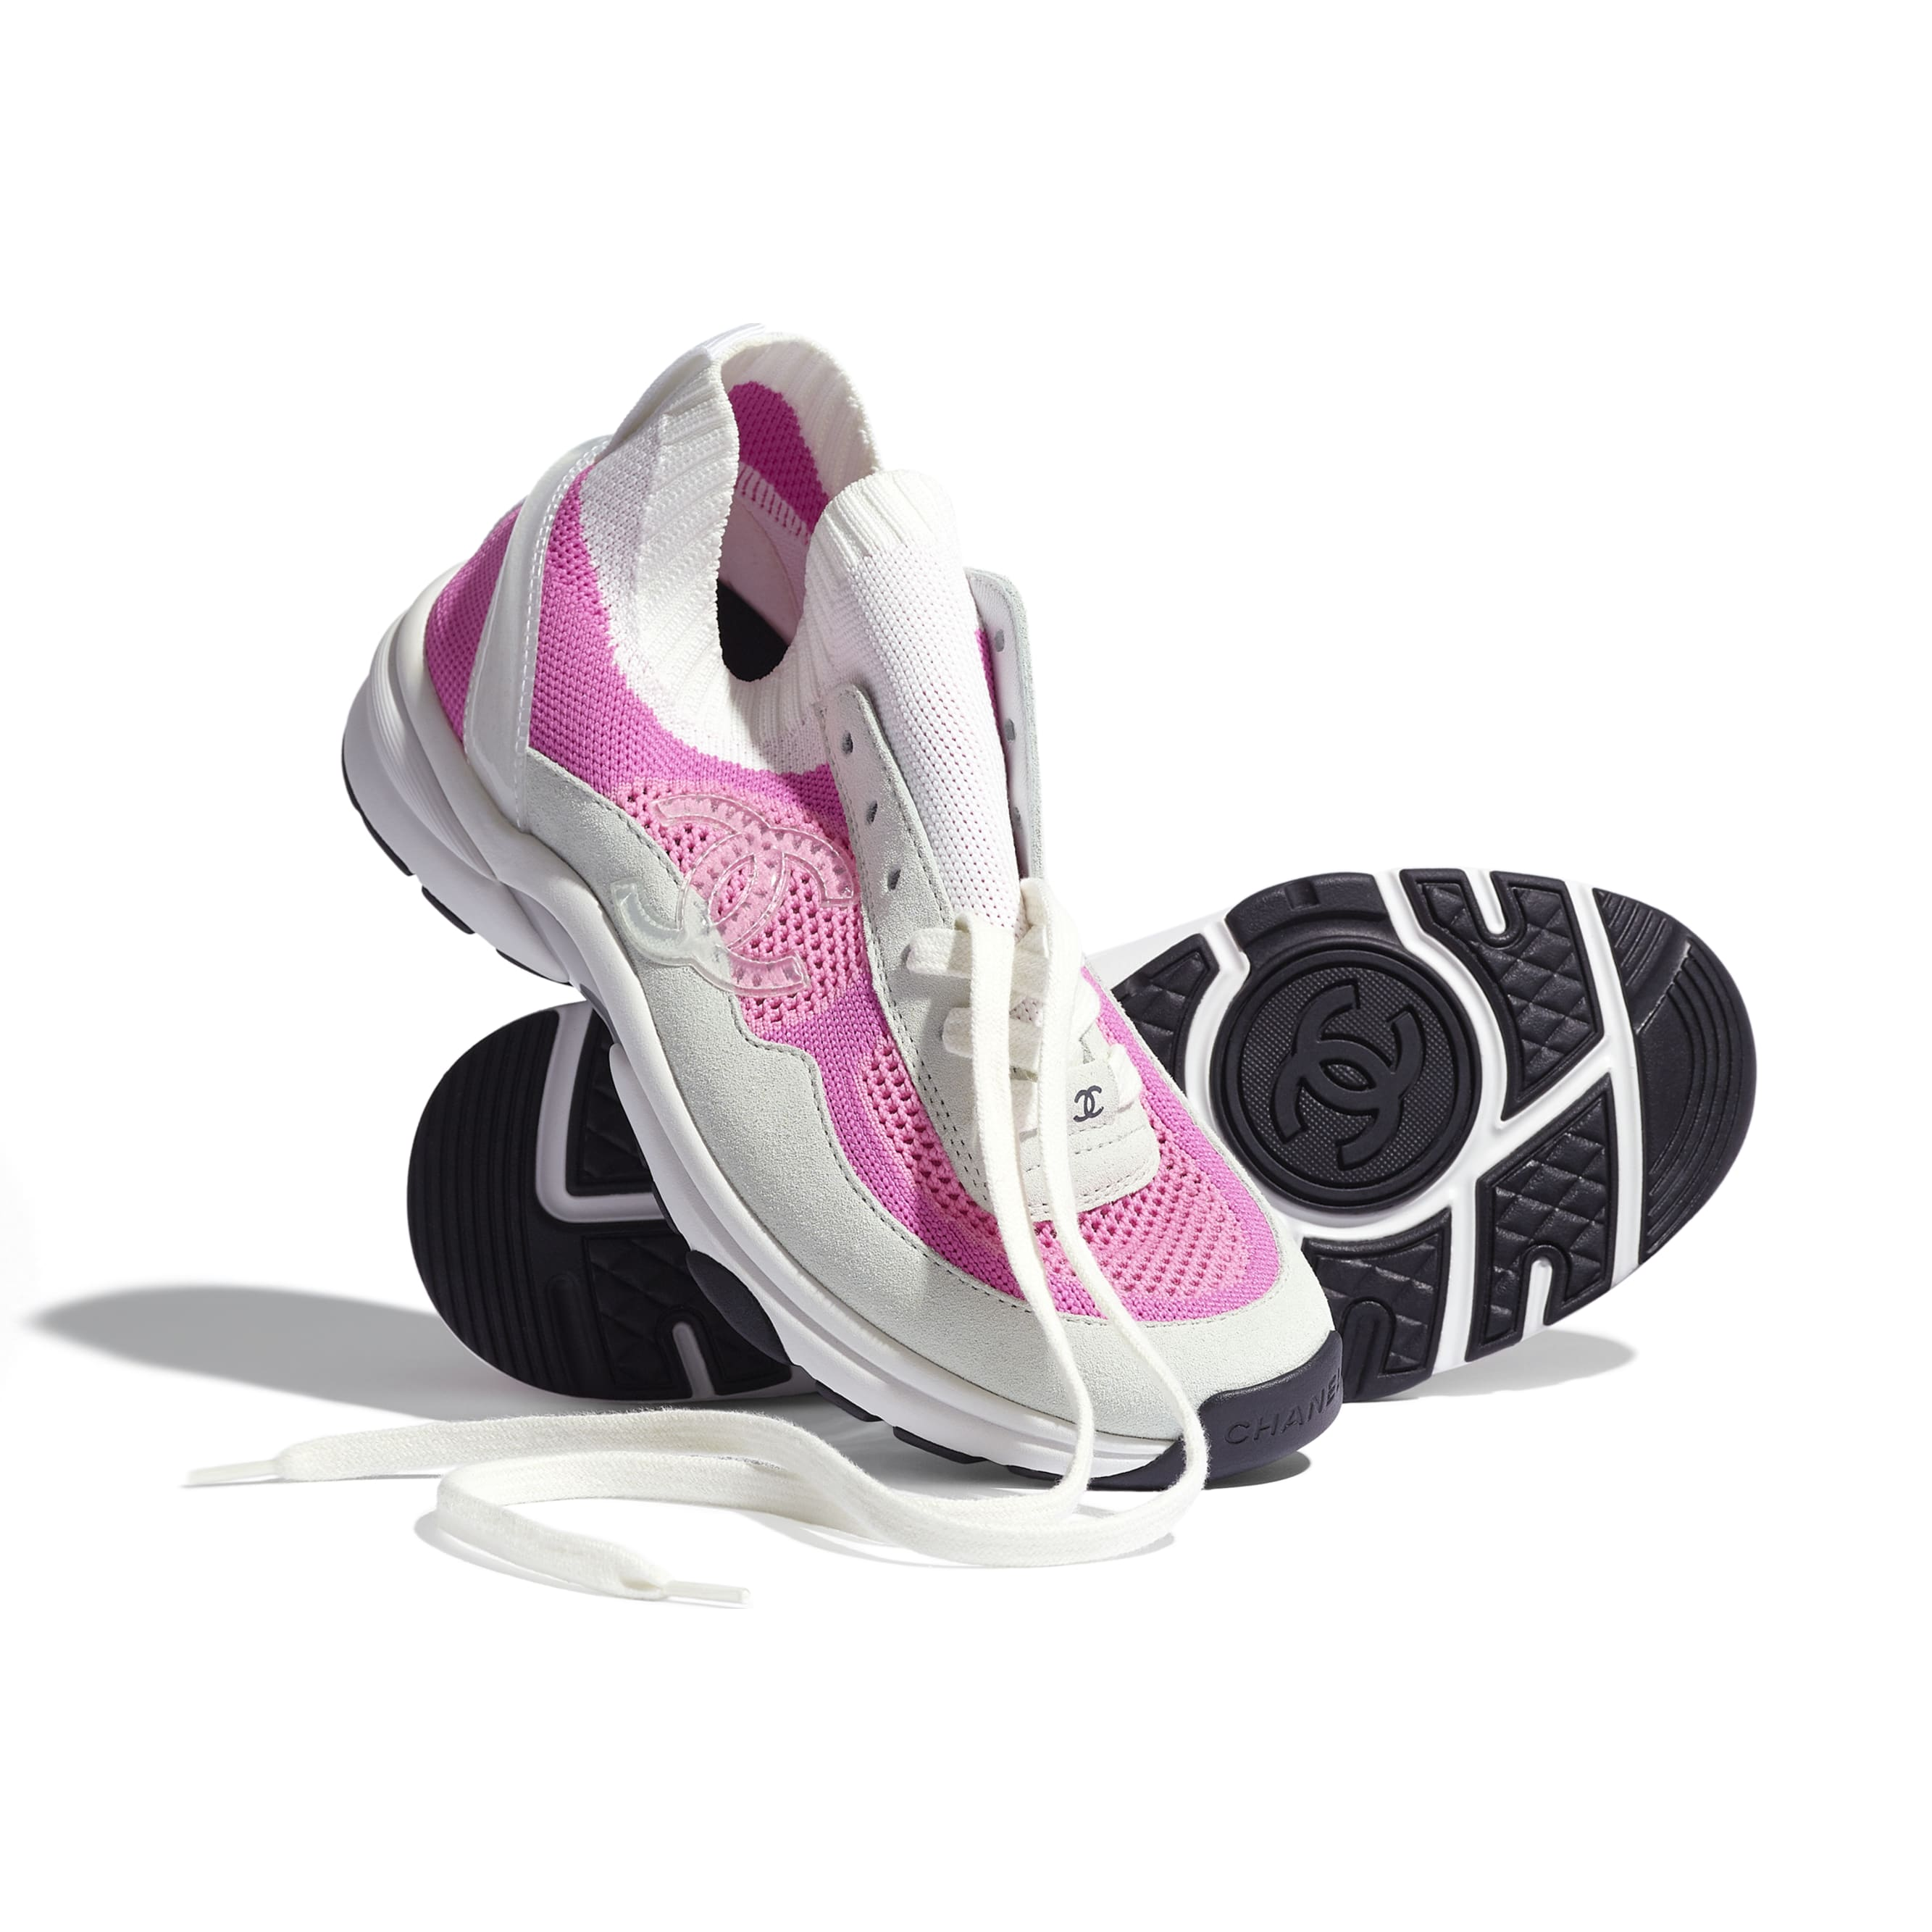 Trainers - White & Pink - Fabric & Suede Calfskin - CHANEL - Extra view - see standard sized version